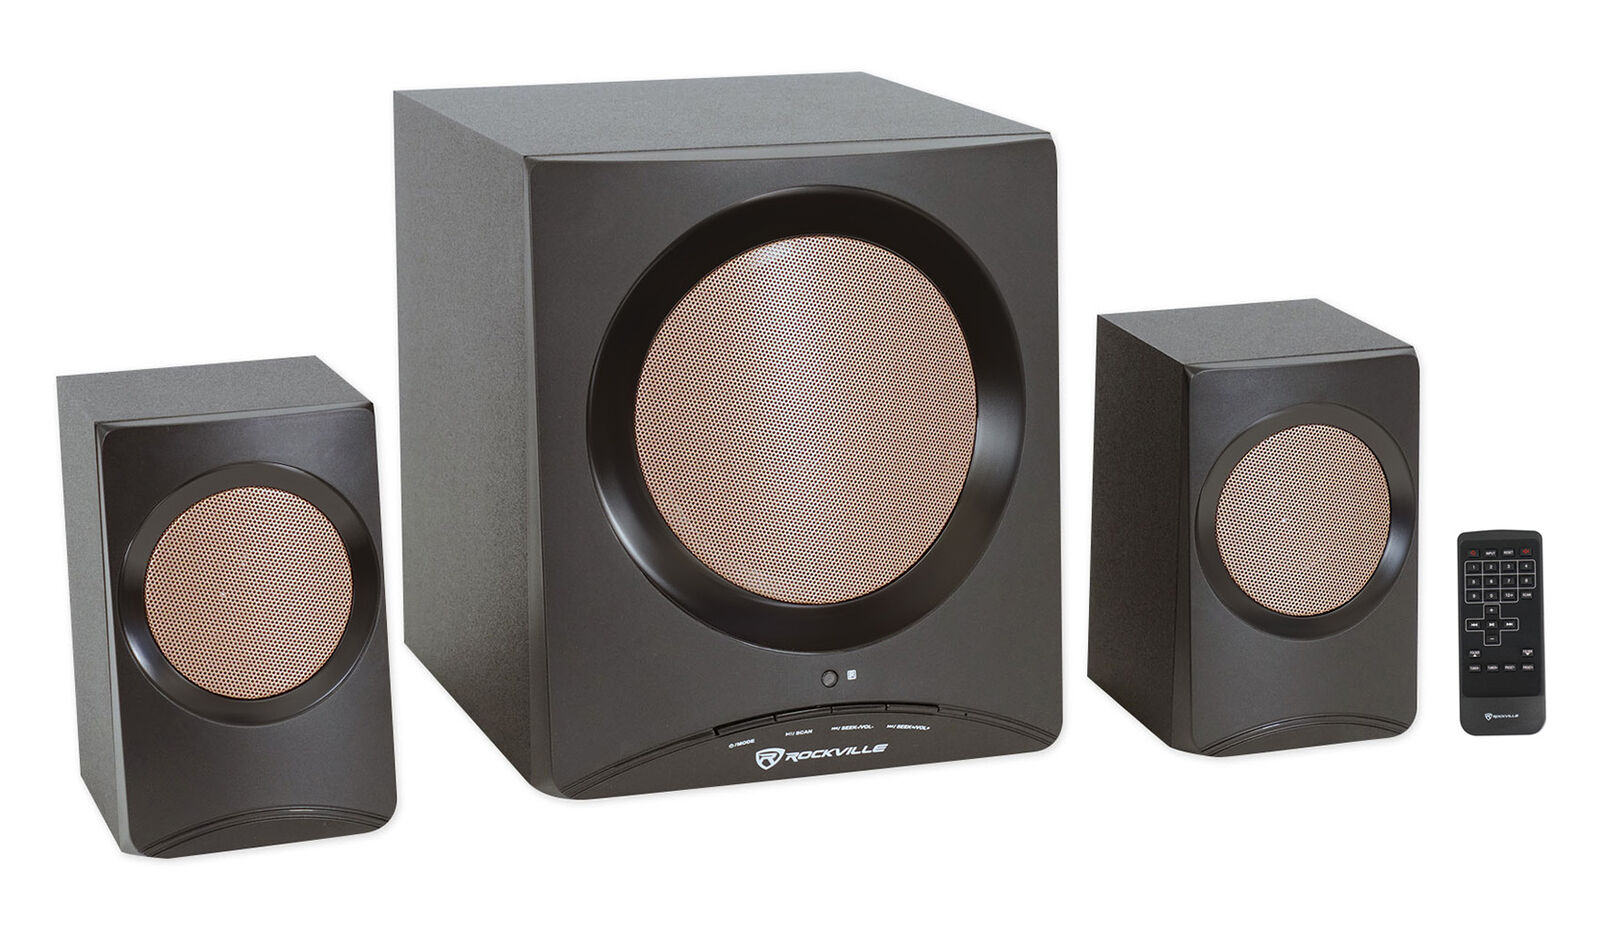 Rockville ROCK MEDIA Home/Computer Speakers+Subwoofer/Bluetooth/USB/SD/FM+Remote. Buy it now for 49.95